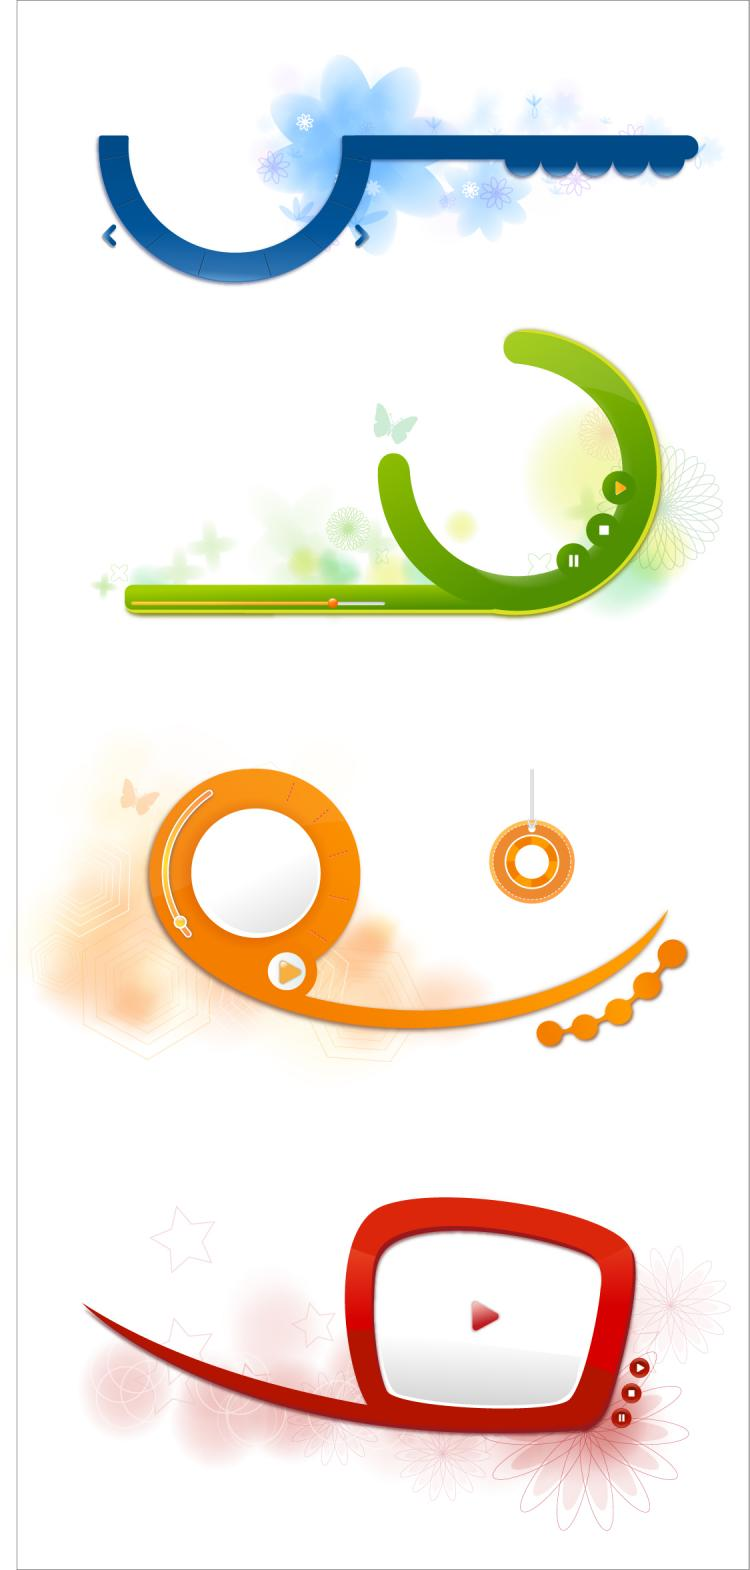 download design clip art vector - photo #38